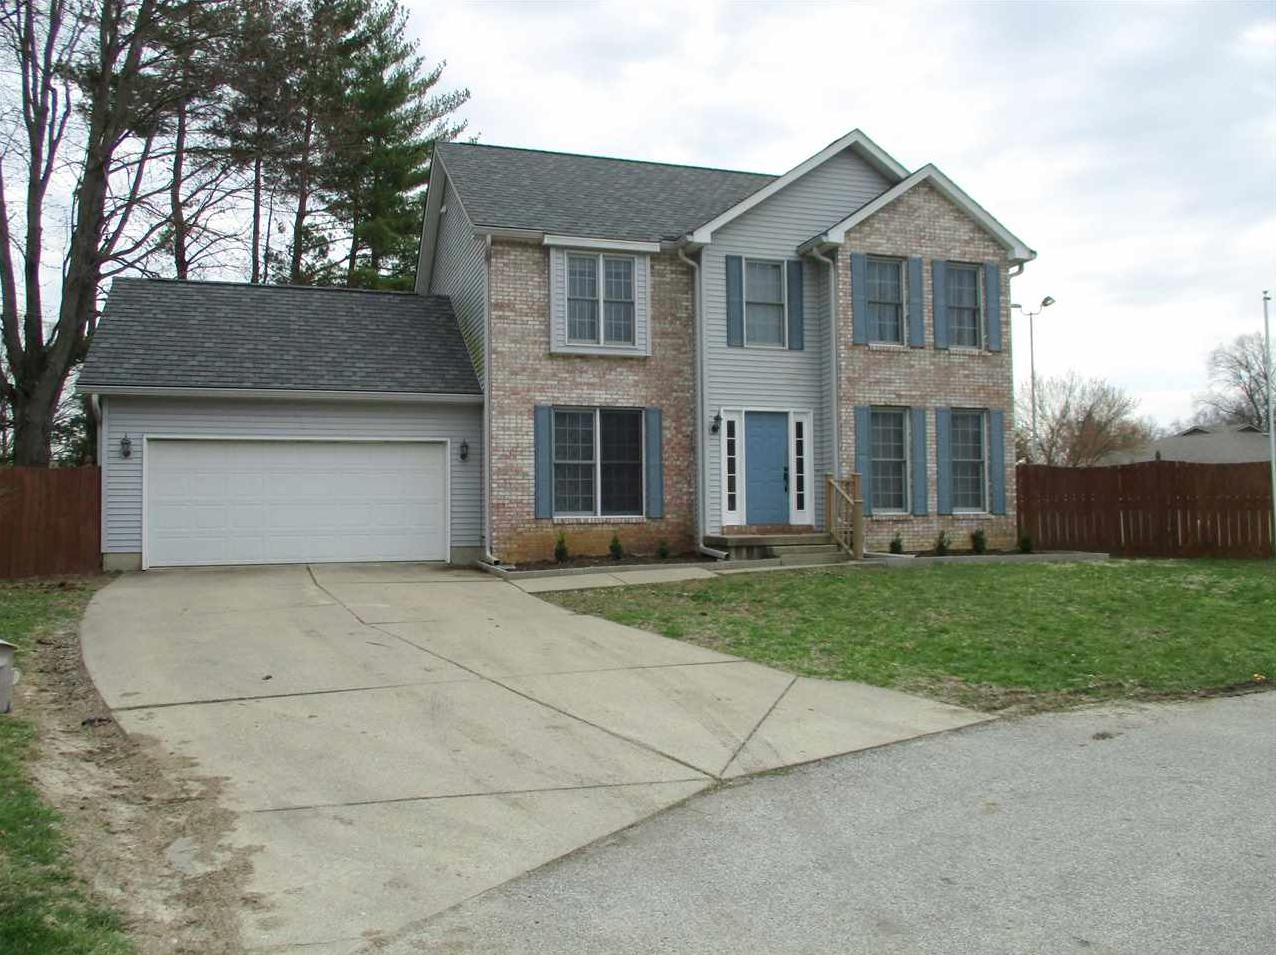 Photo of 1552 Hulman Waye Court Terre Haute IN 47803